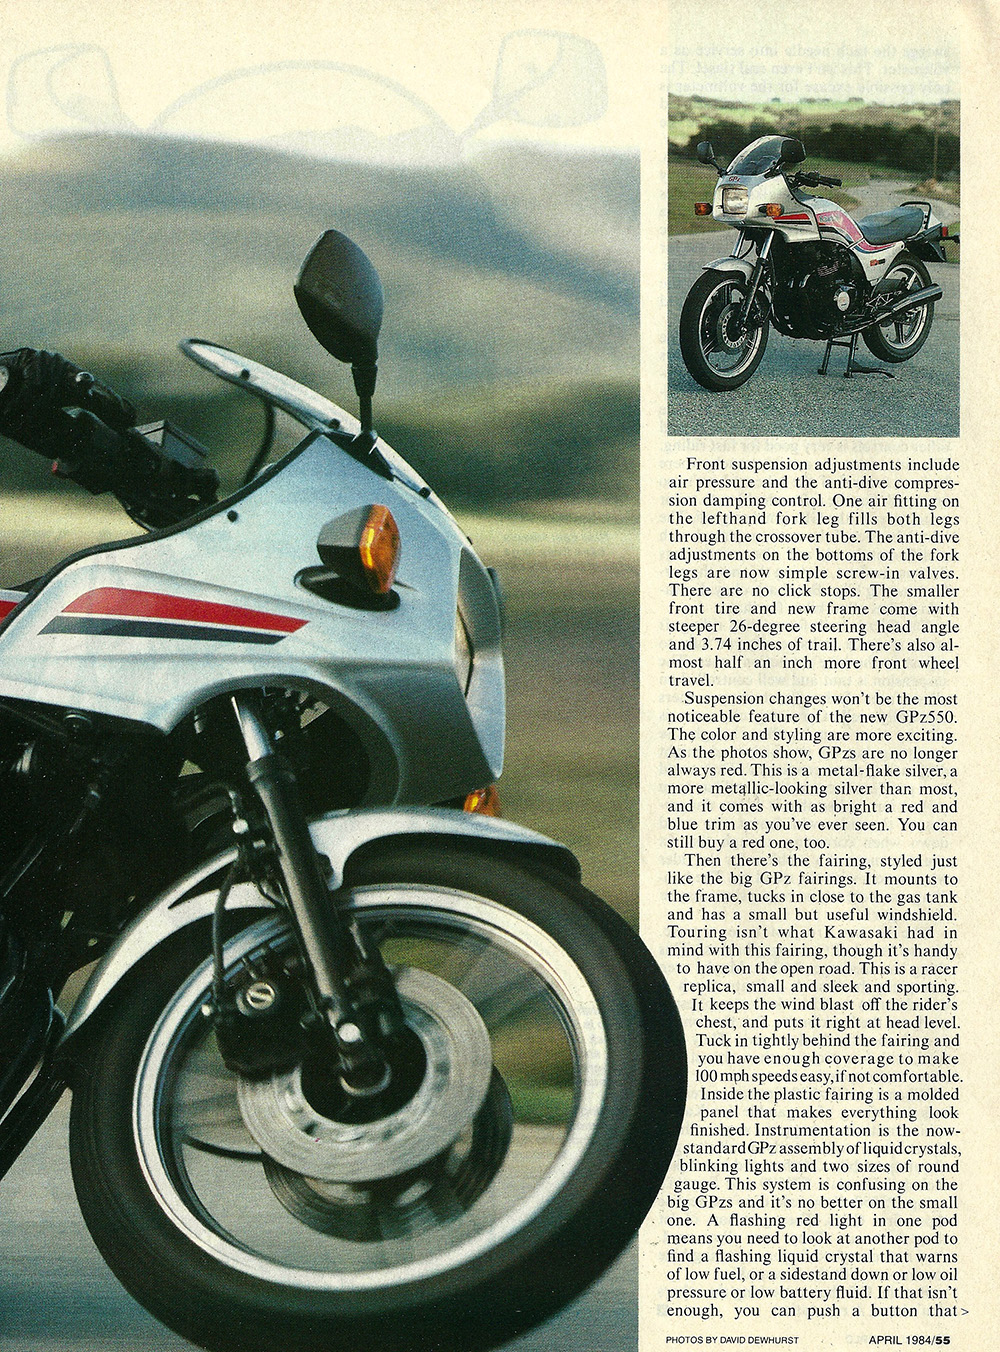 1984 Kawasaki GPz550 road test 04.jpg